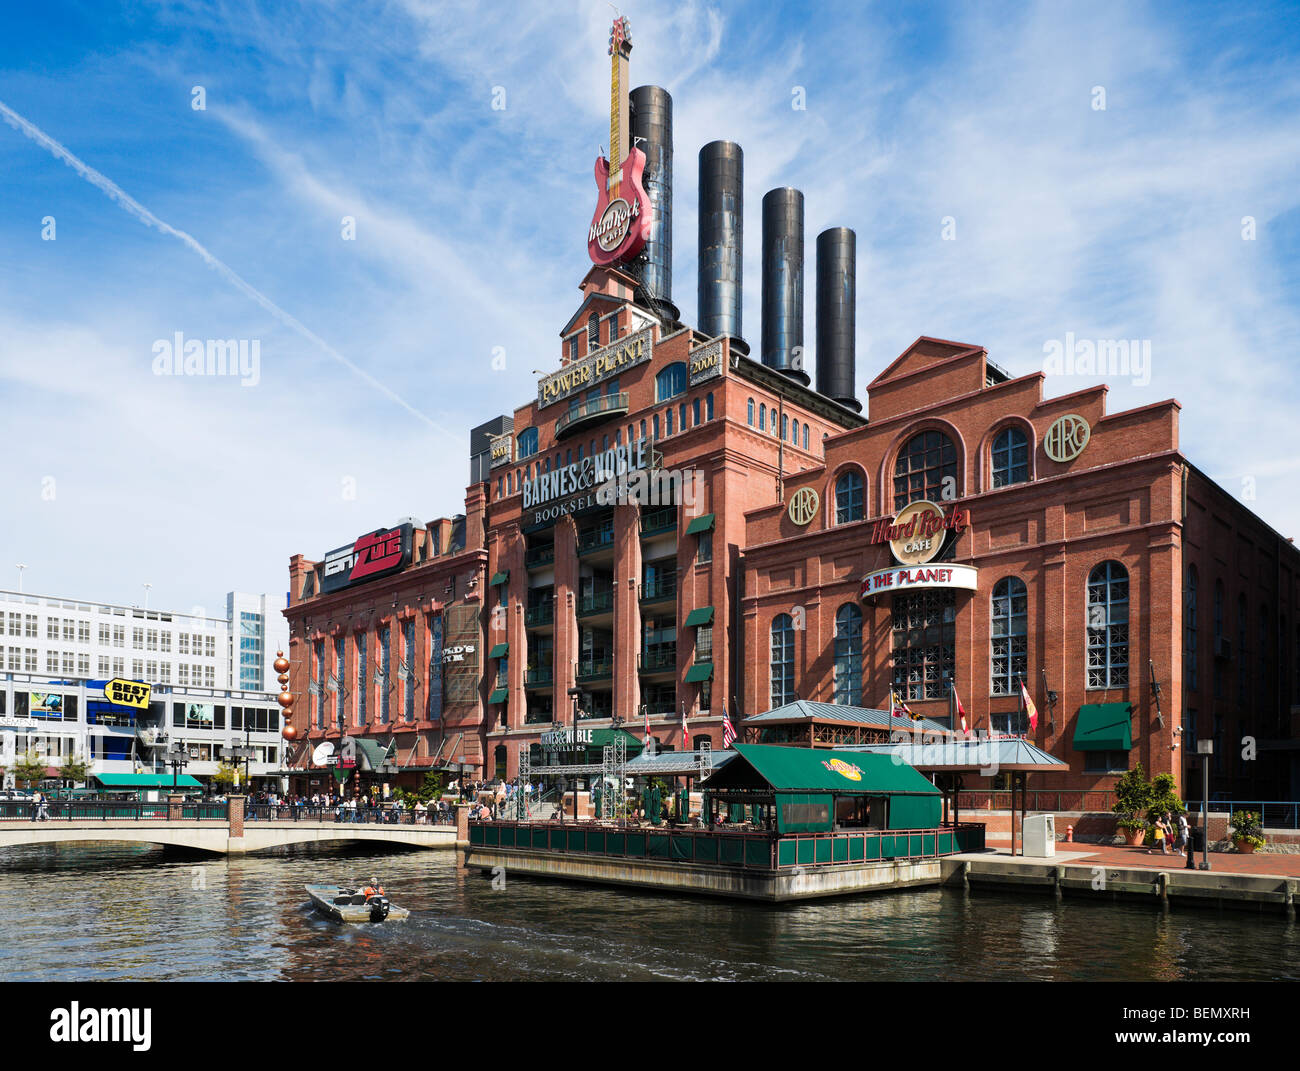 The old Power Plant, Inner Harbor, Baltimore, Maryland, USA - Stock Image